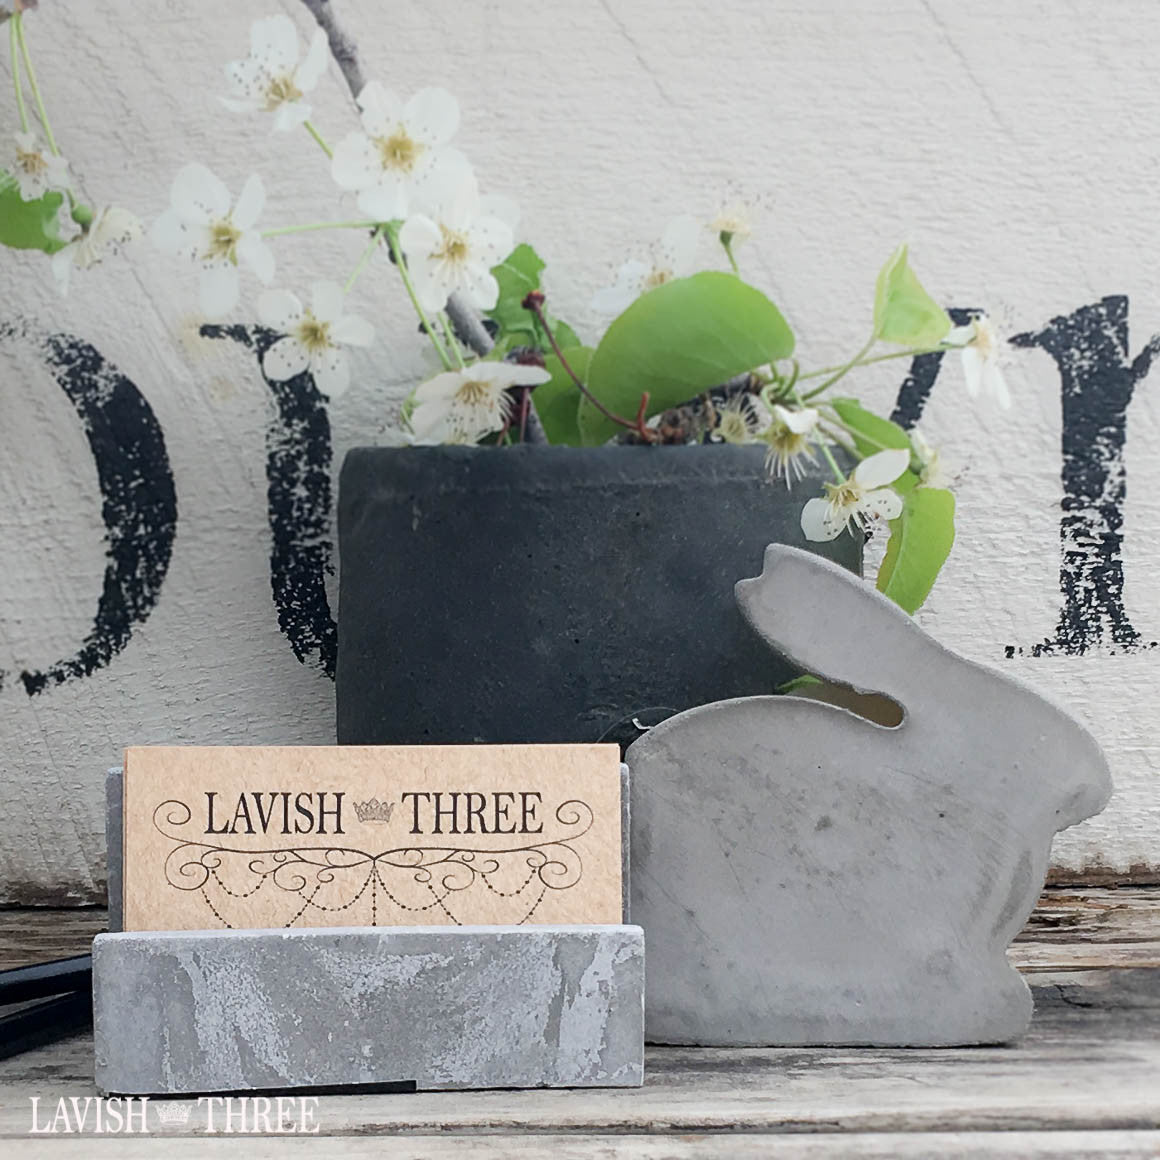 Shabby cement bunny tape dispenser and business card holder office desk set, Lavish Three 3